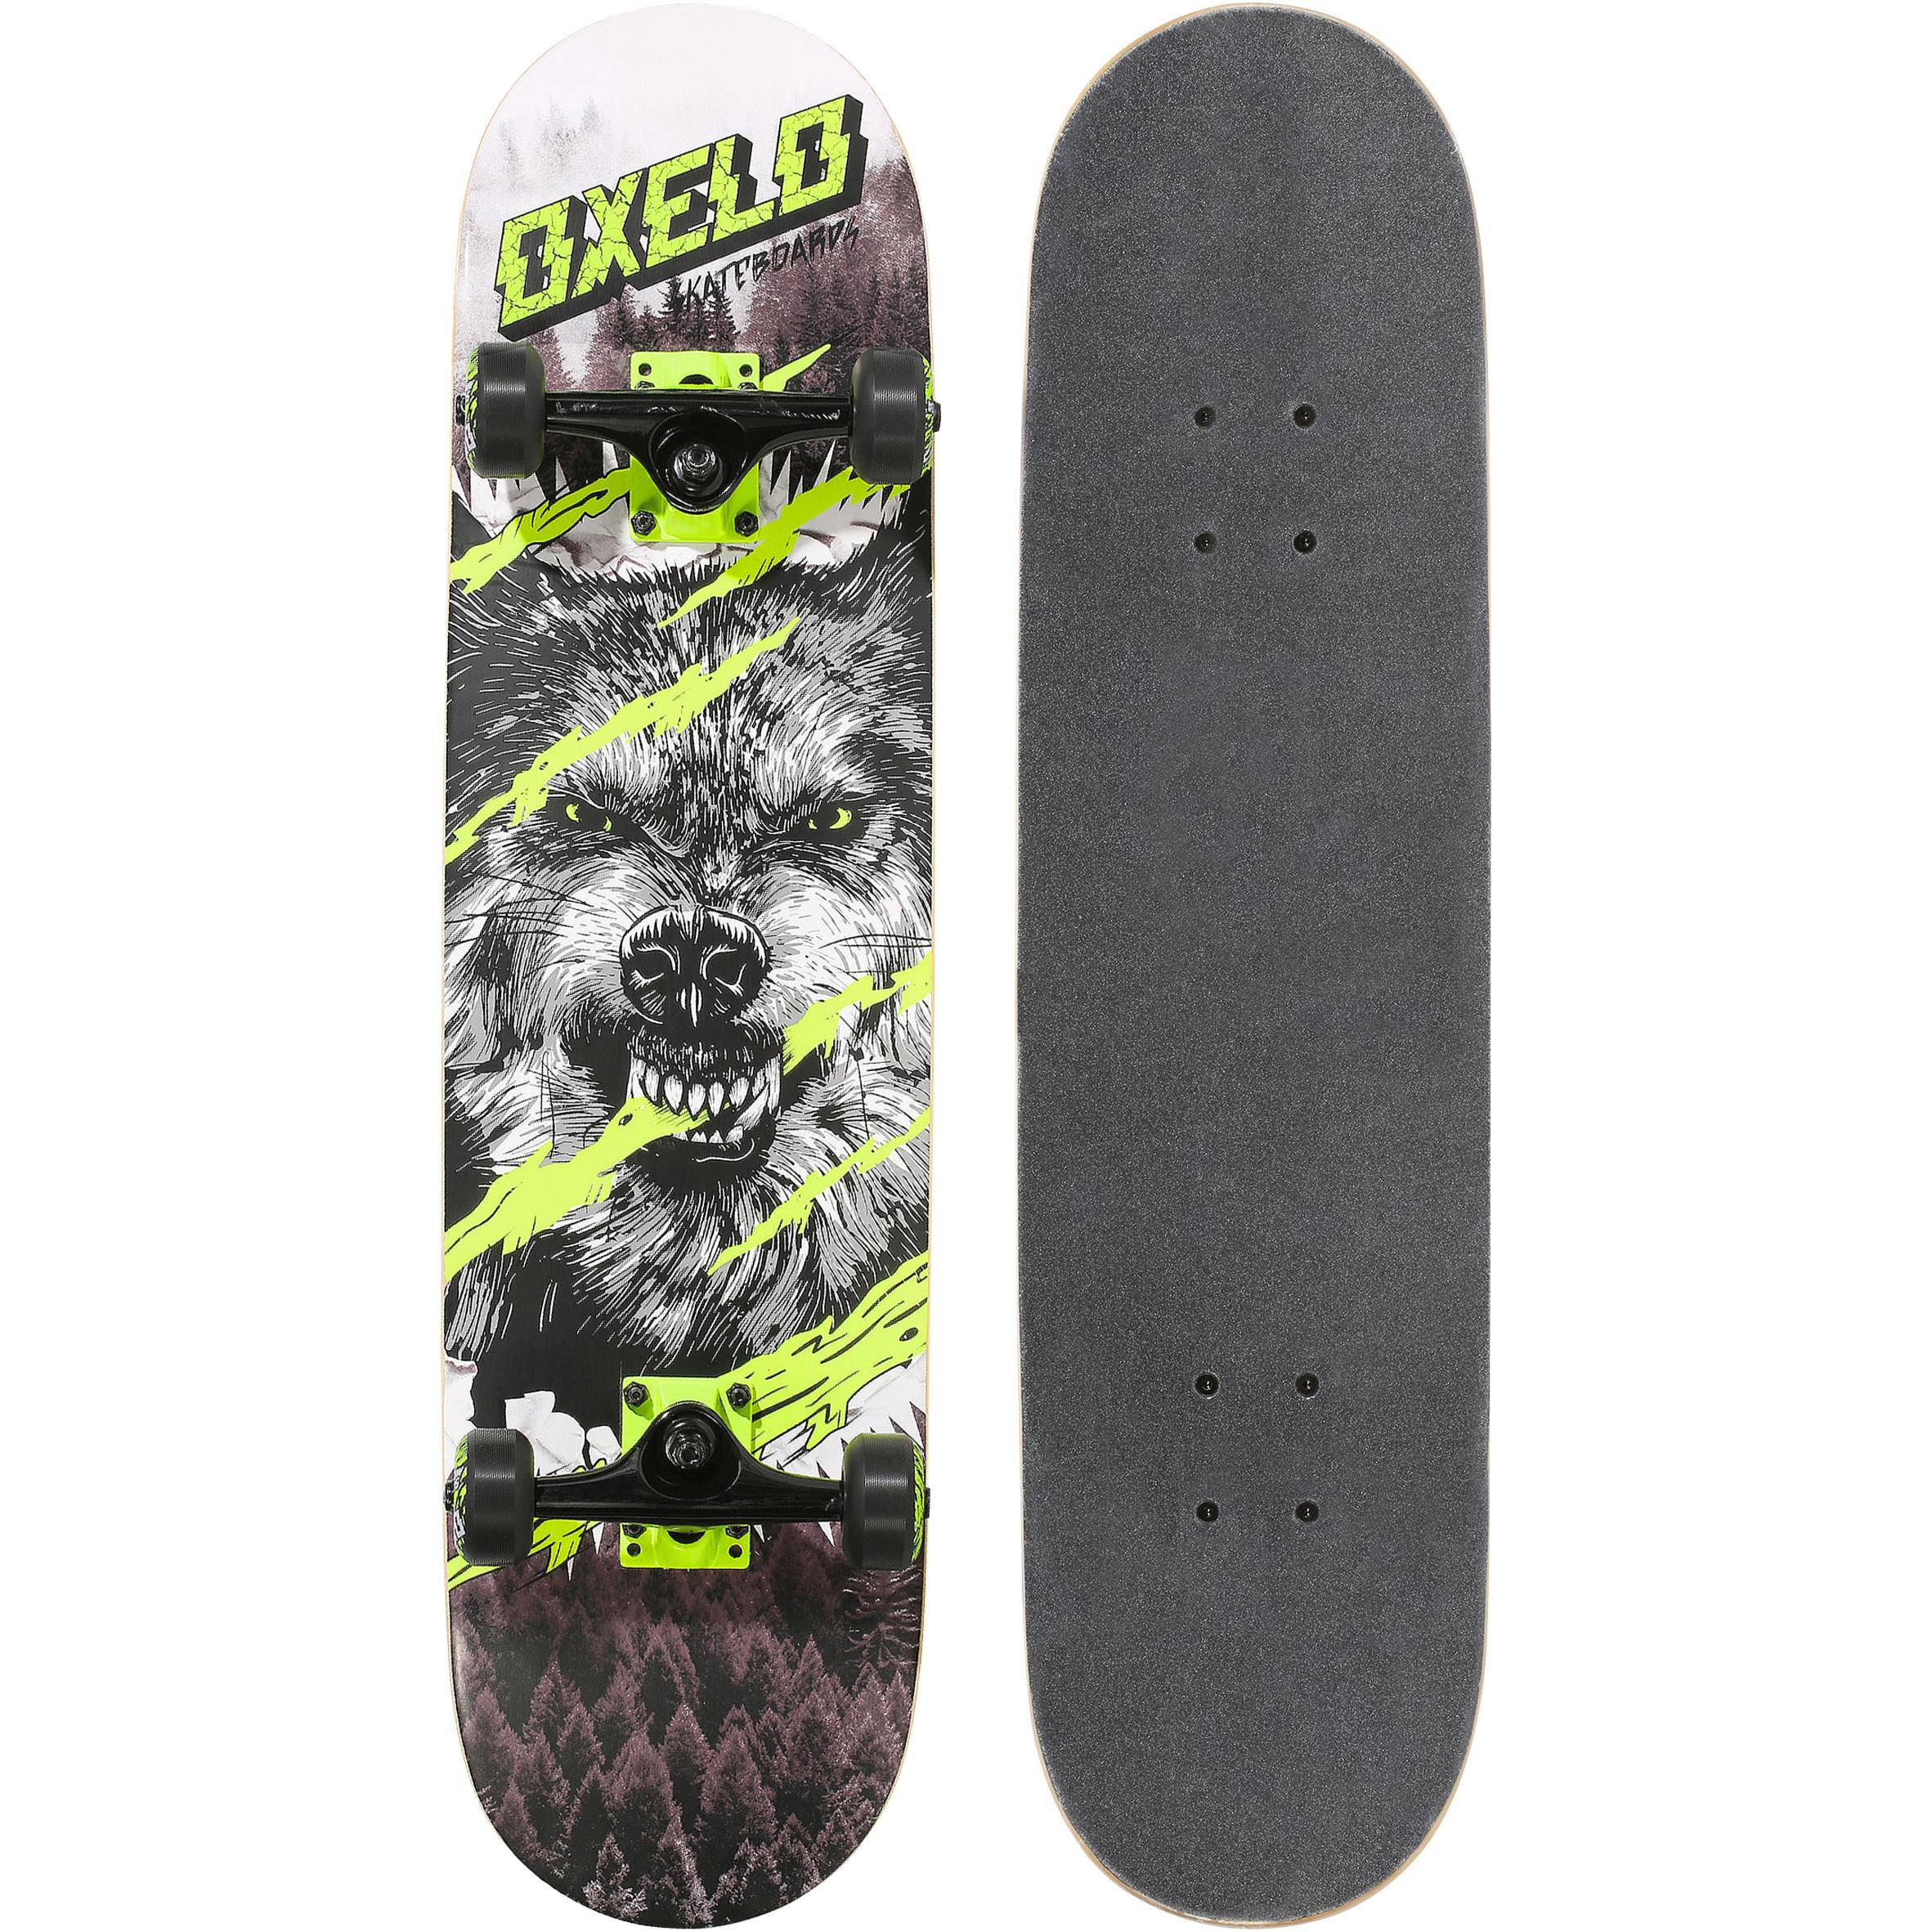 Oxelo SKATE ENFANT MID500 WOLF VERT 8 A 12 ANS - Oxelo